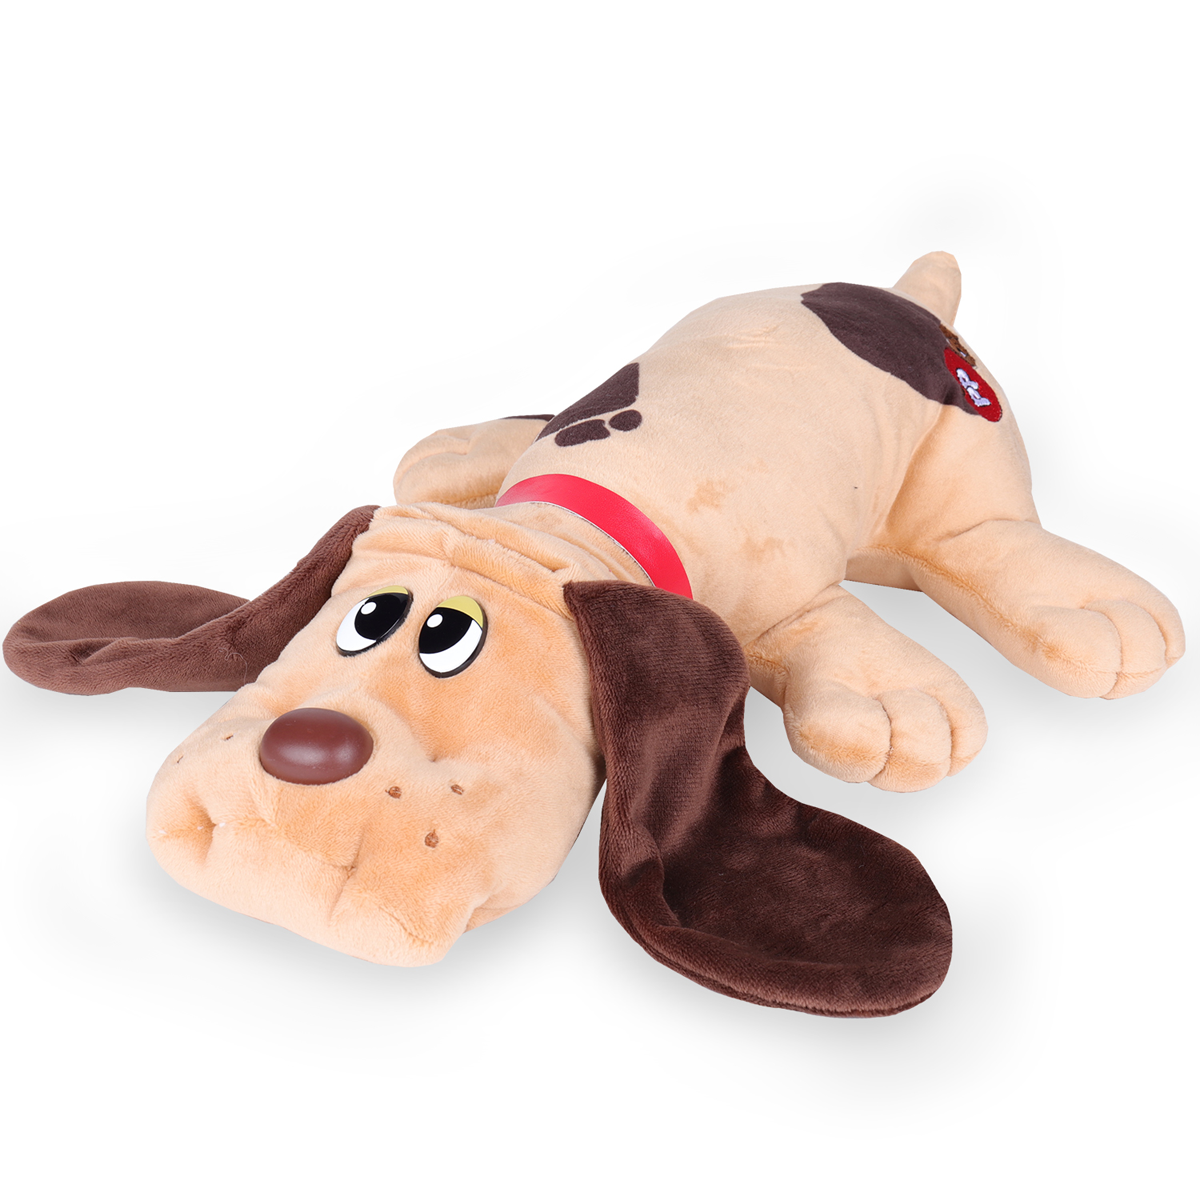 Pound Puppies Classic Plush Toy Brown With Spots The Entertainer